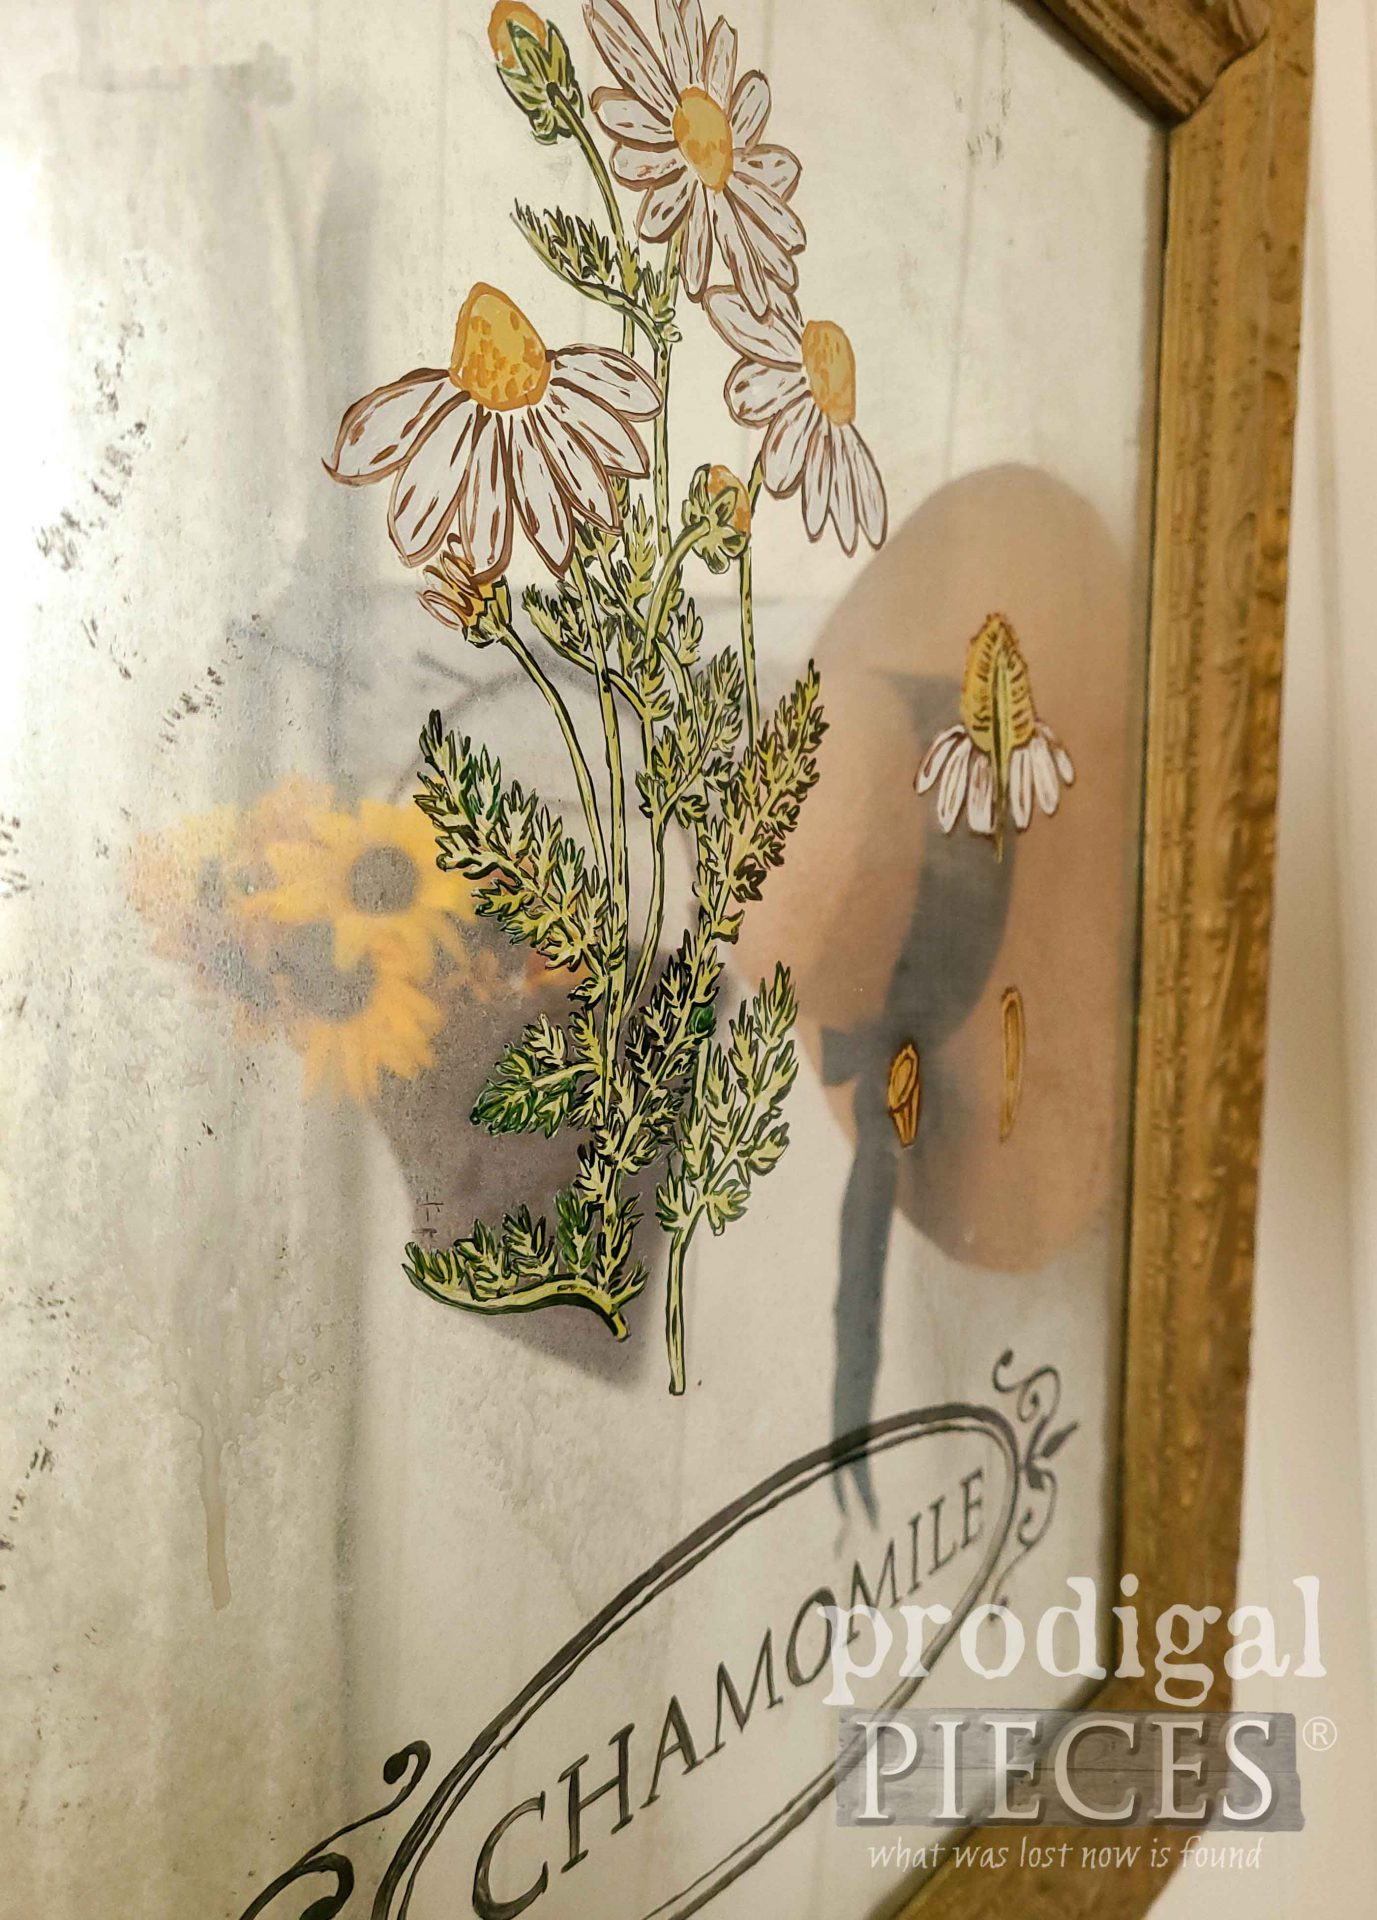 Mirror Art in Upcycled Picture Frame by Larissa of Prodigal Pieces | prodigalpieces.com #prodigalpieces #diy #mirror #home #homedecor #farmhouse #art